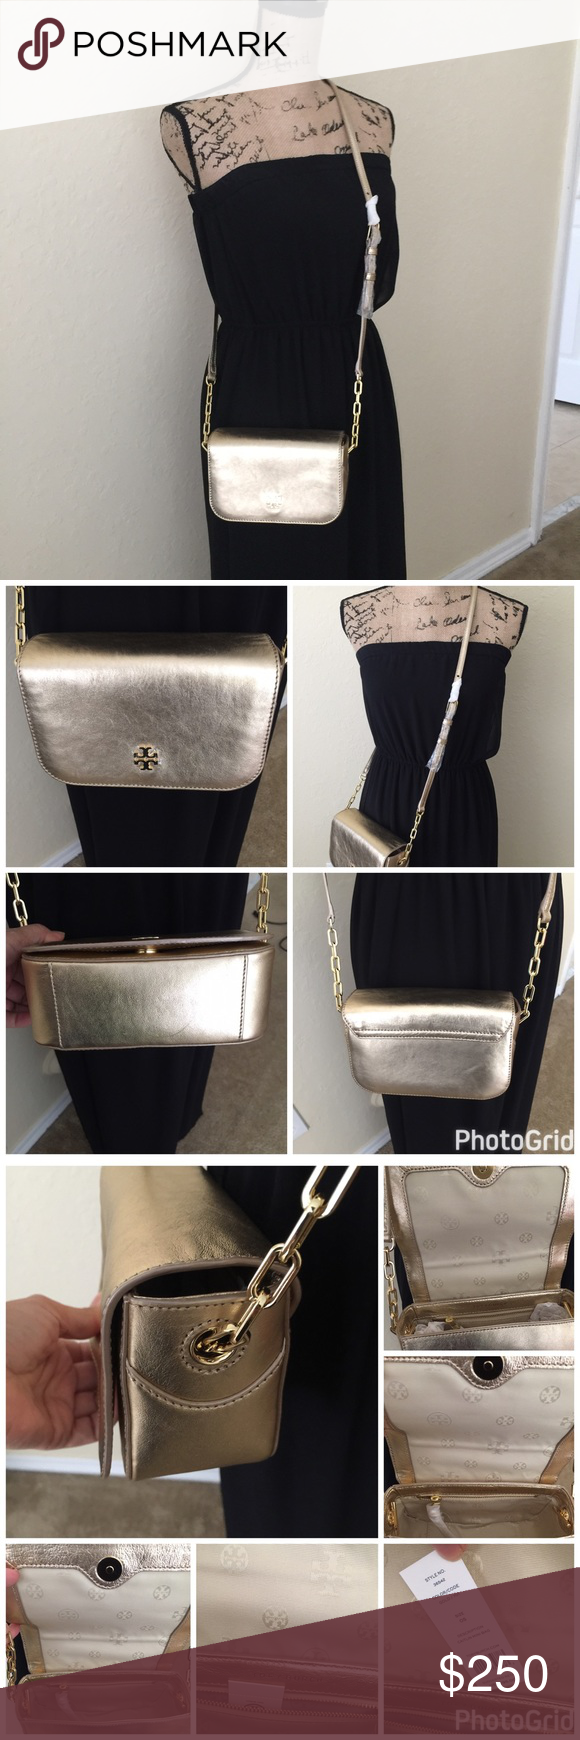 2128be5e40c3 Toy Butch Caitlin Mini Crossbody bag. New with tags Tory Burch Caitlin mini  crossbody in